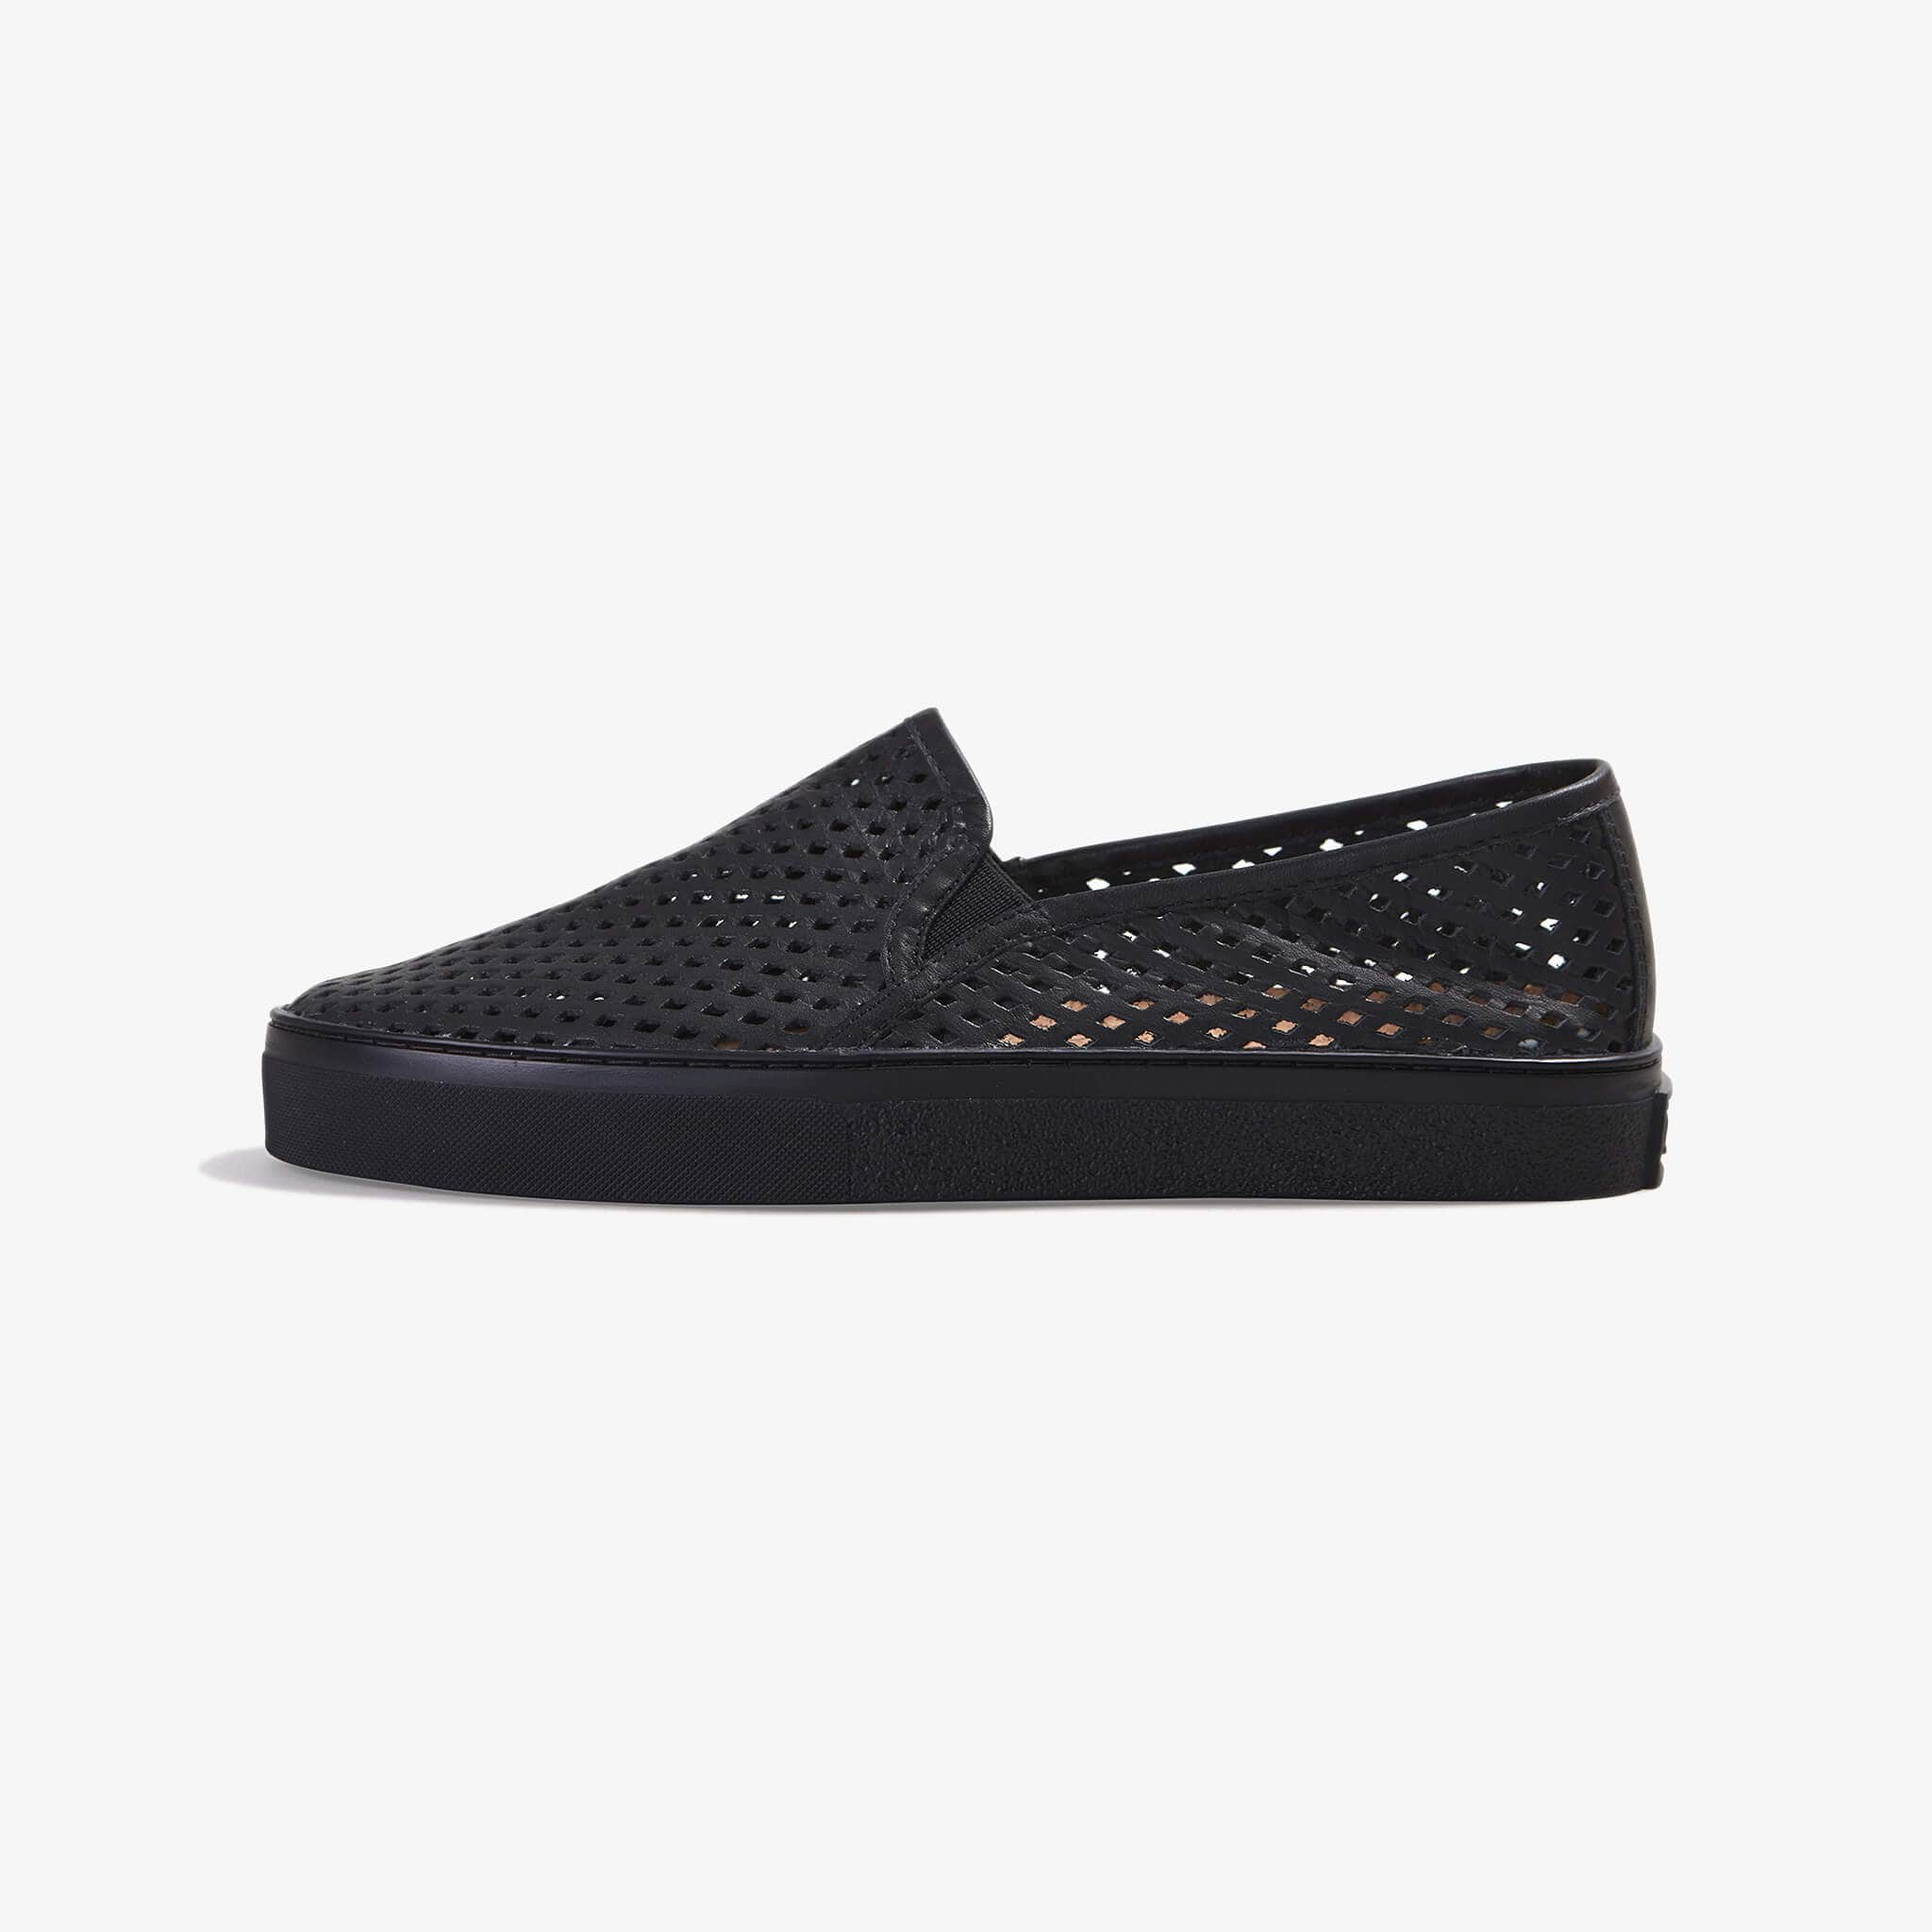 Jibs Classic Jet Black Royale Slip On Sneaker-Shoe Side